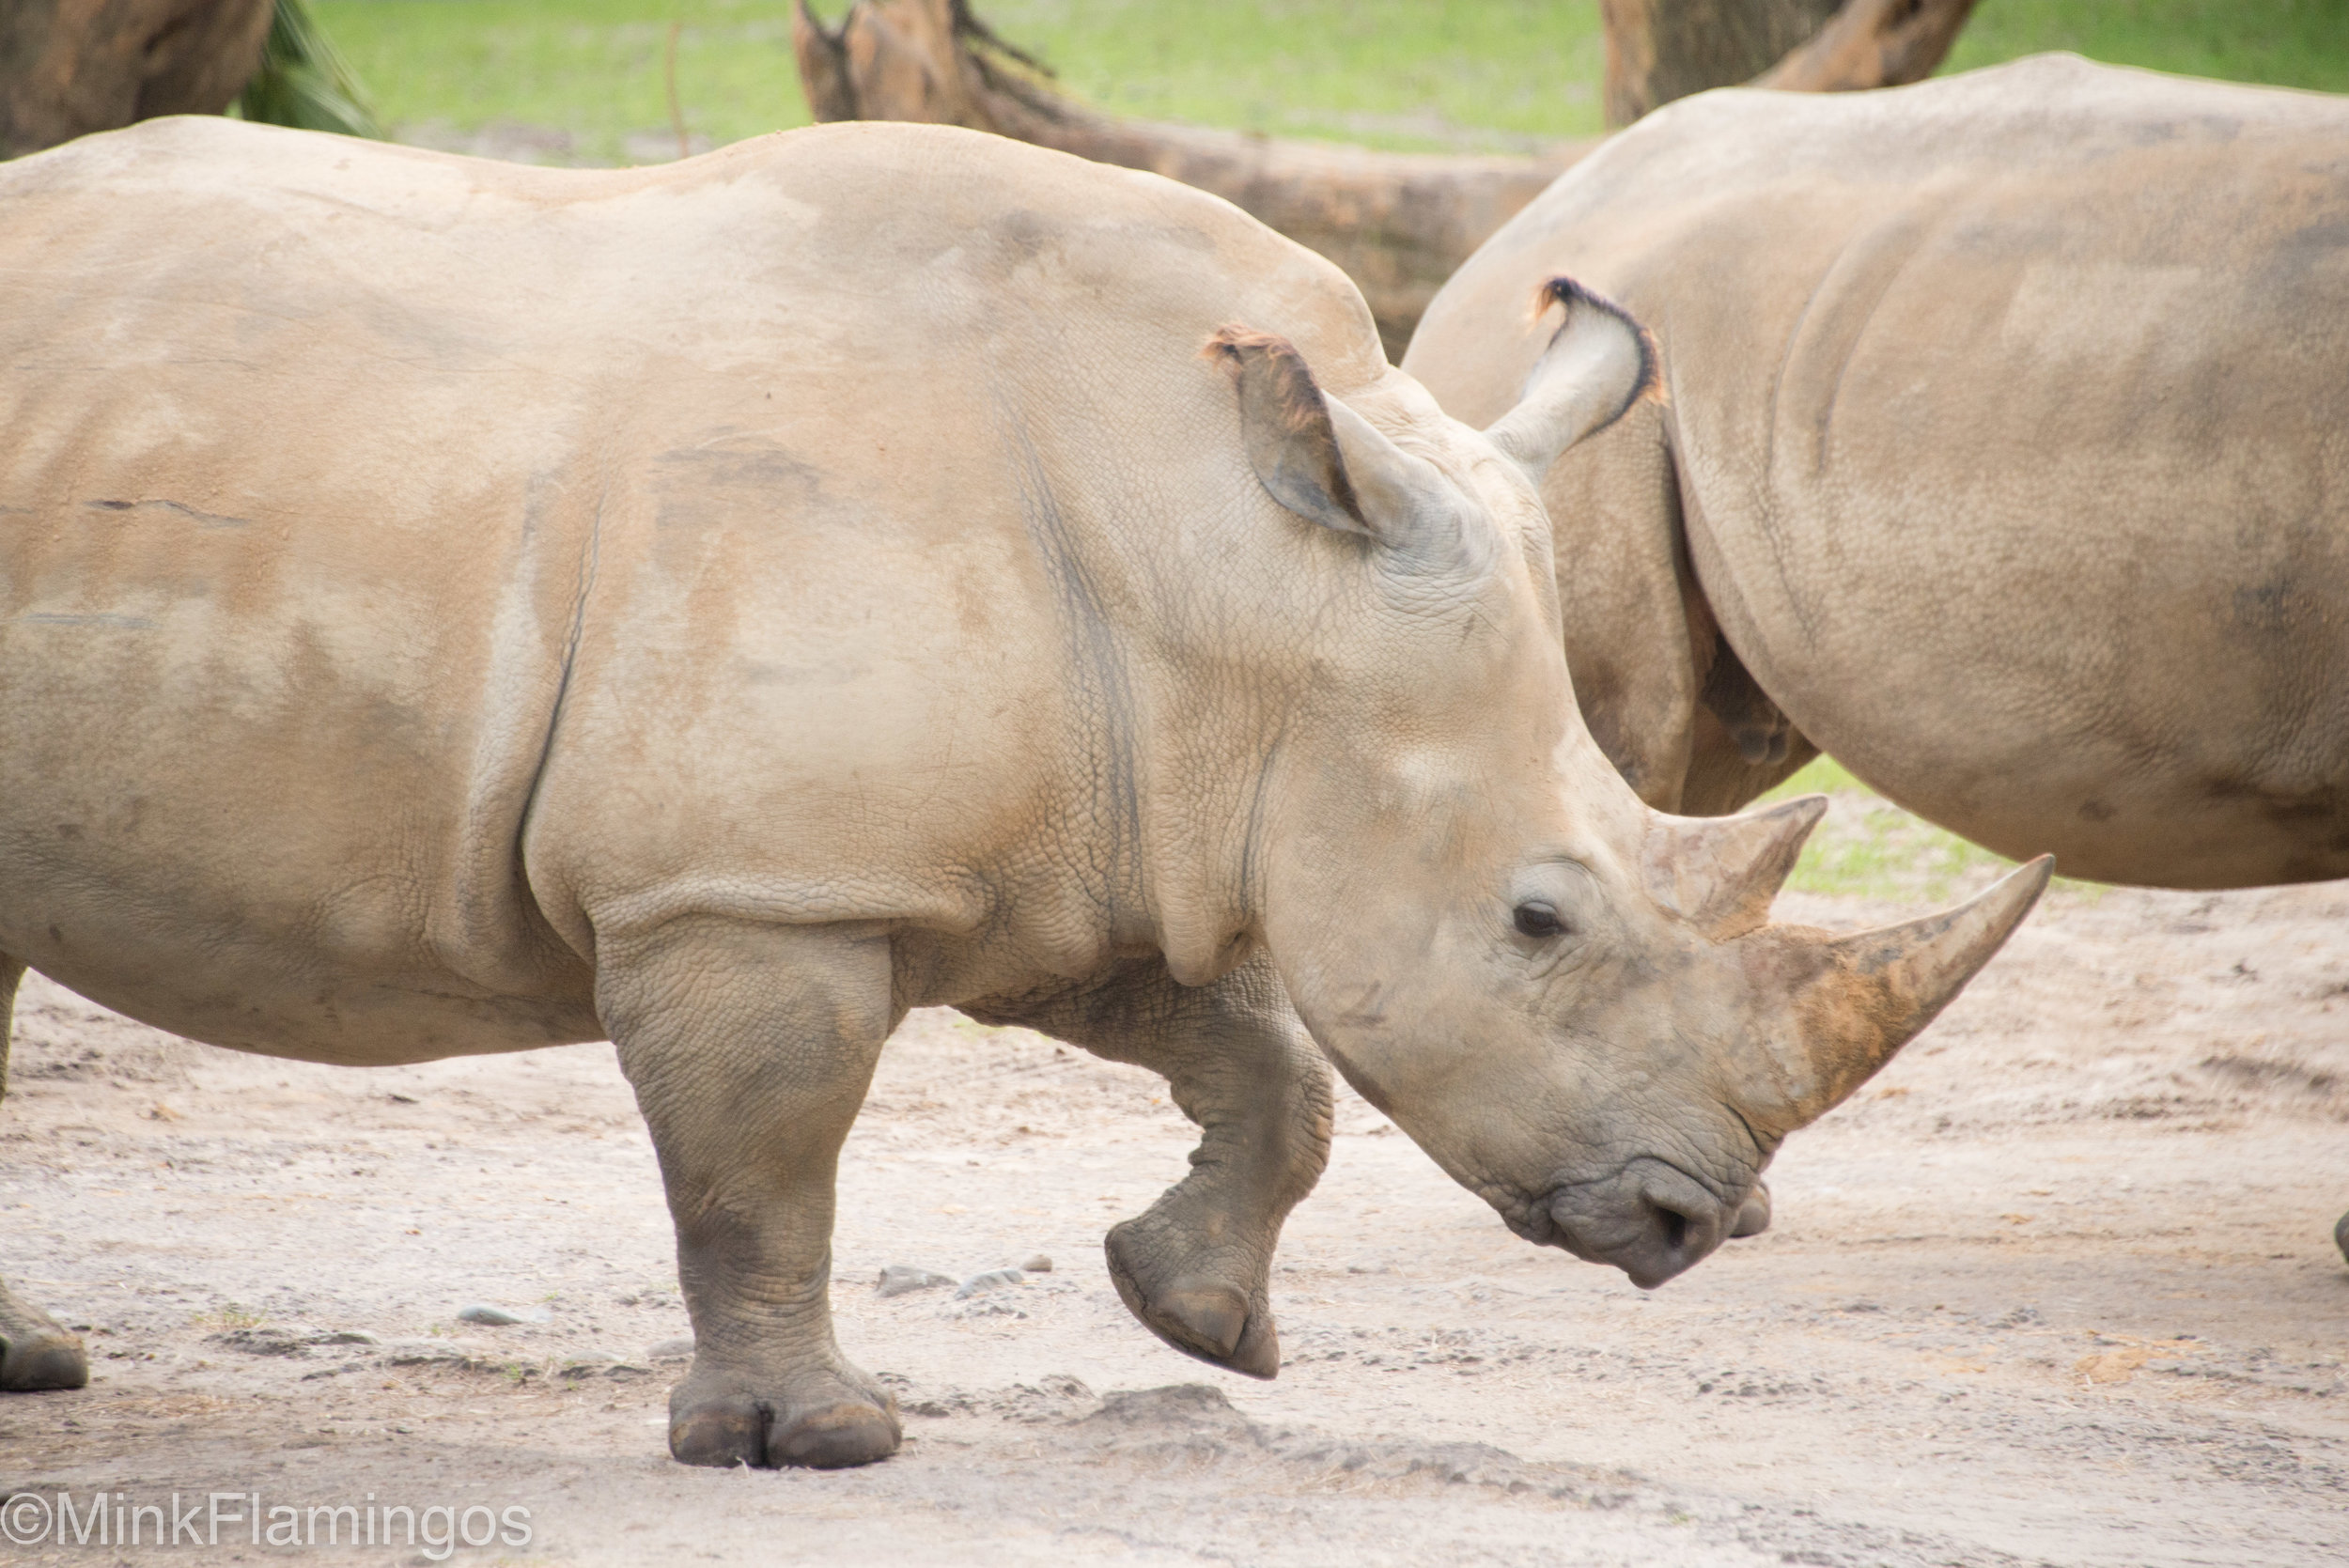 1/1250 is fast enough to capture a rhino mid-step with no motion blur